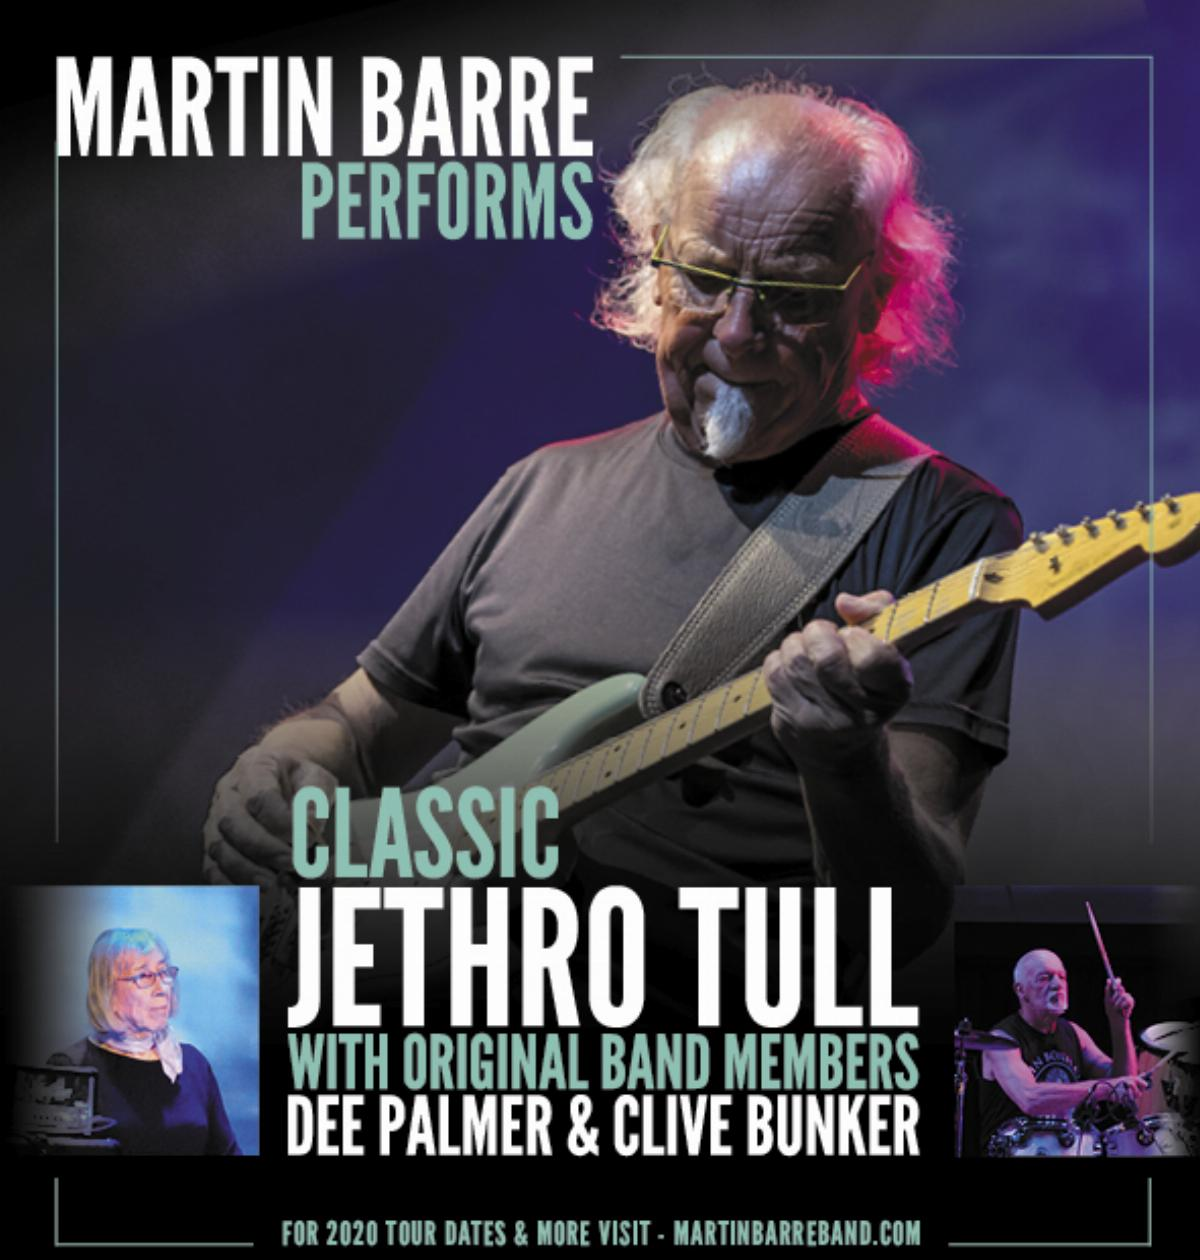 Live at The Acorn - MARTIN BARRE PERFORMS CLASSIC JETHRO TULL WITH DEE PALMER AND CLIVE BUNKER